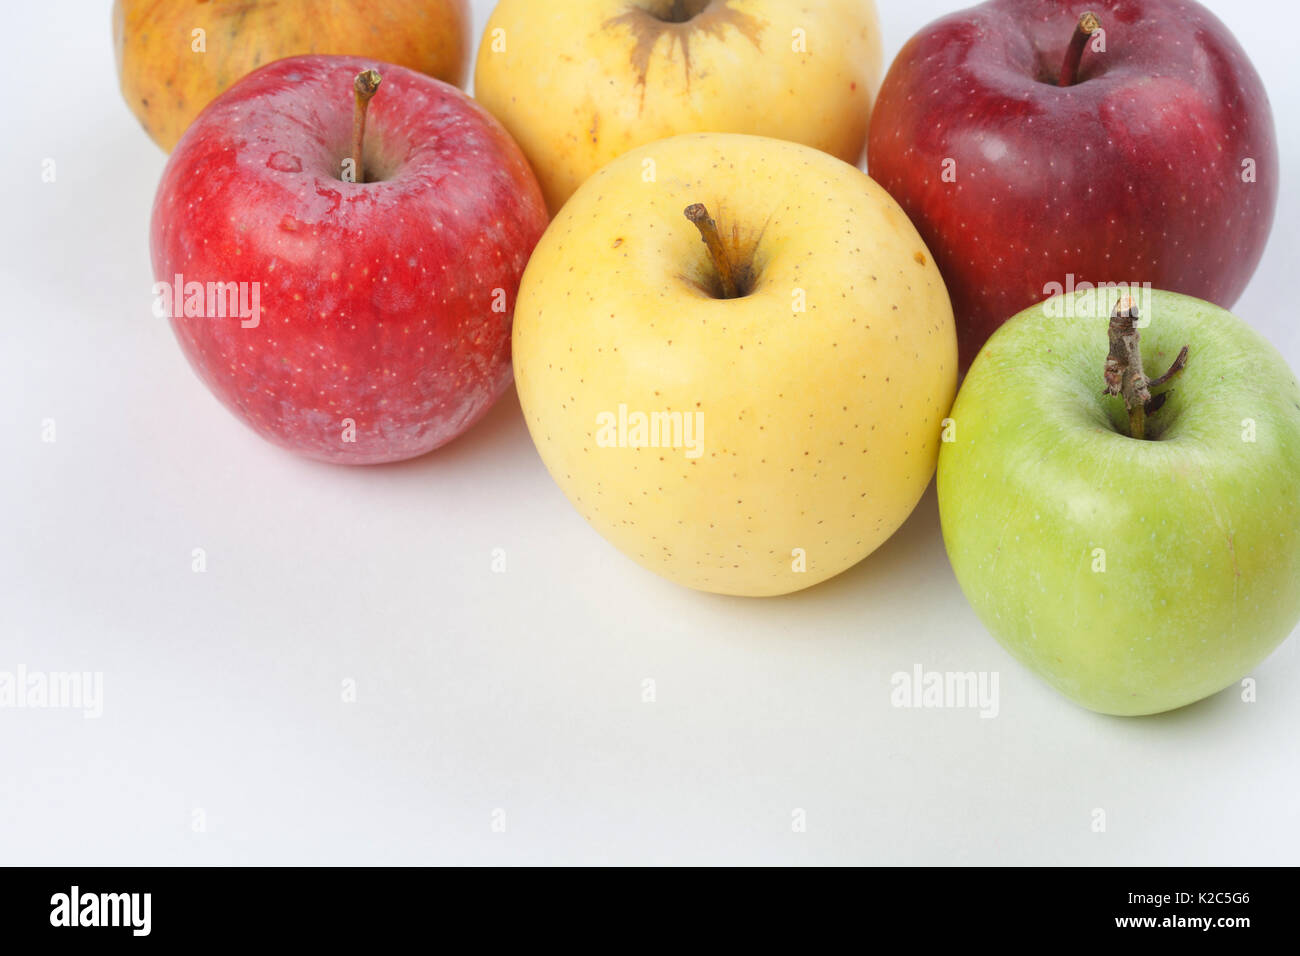 Colorful apples on white background. Fresh ripe apple fruits in different colors: red, yellow, green, orange. macro view. - Stock Image